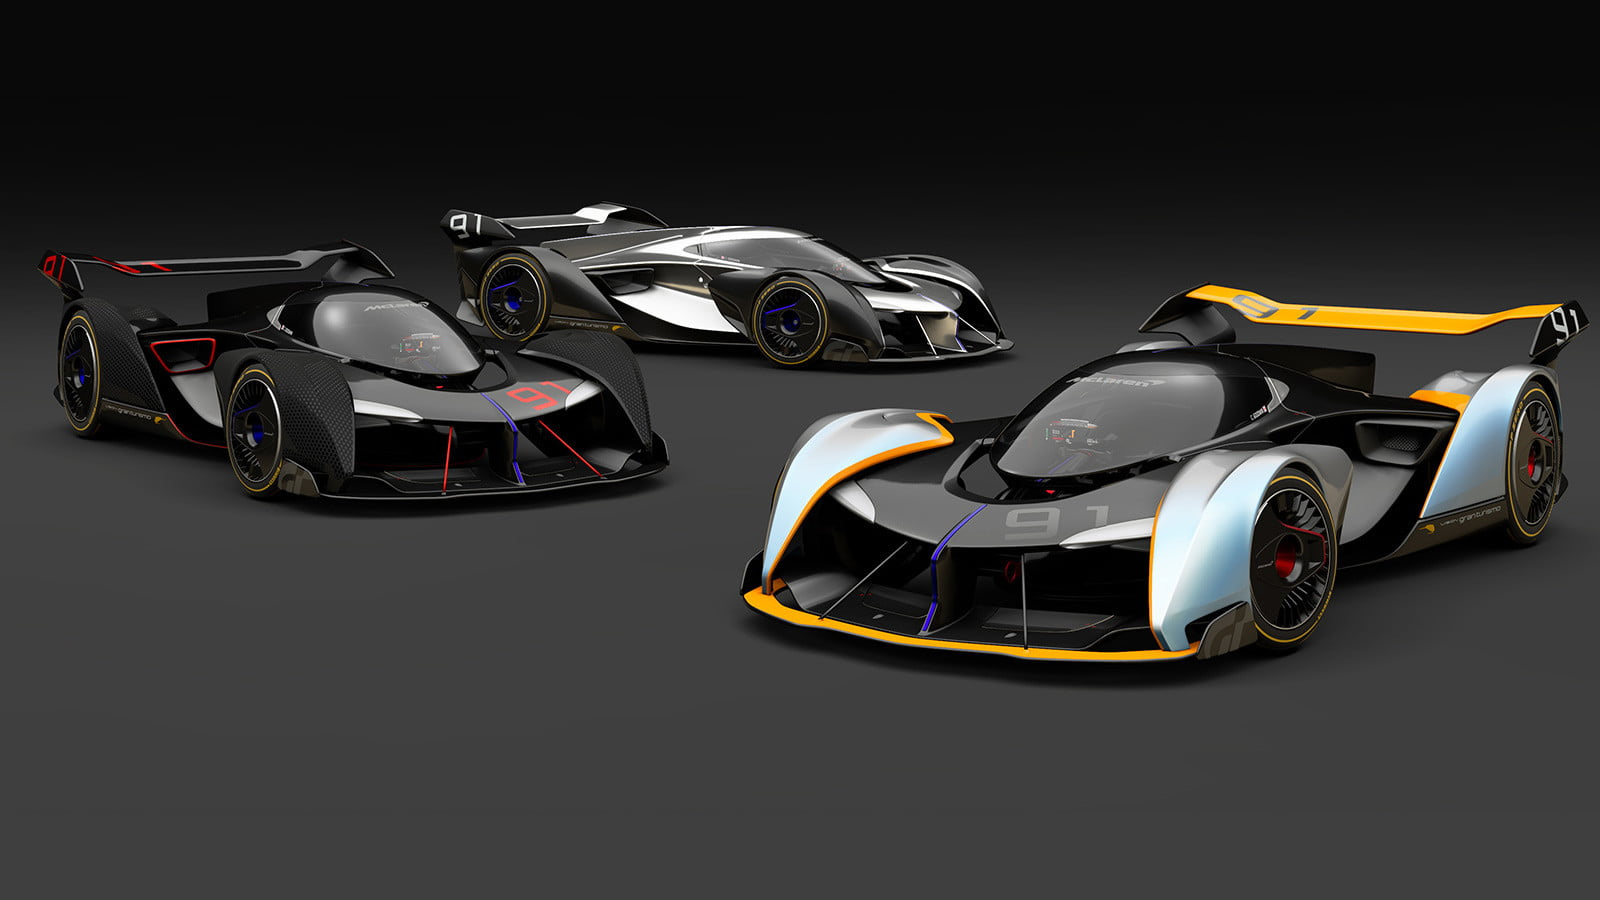 Mclaren S Ultimate Vision Gran Turismo Is A Virtual Look To The Future Digital Trends